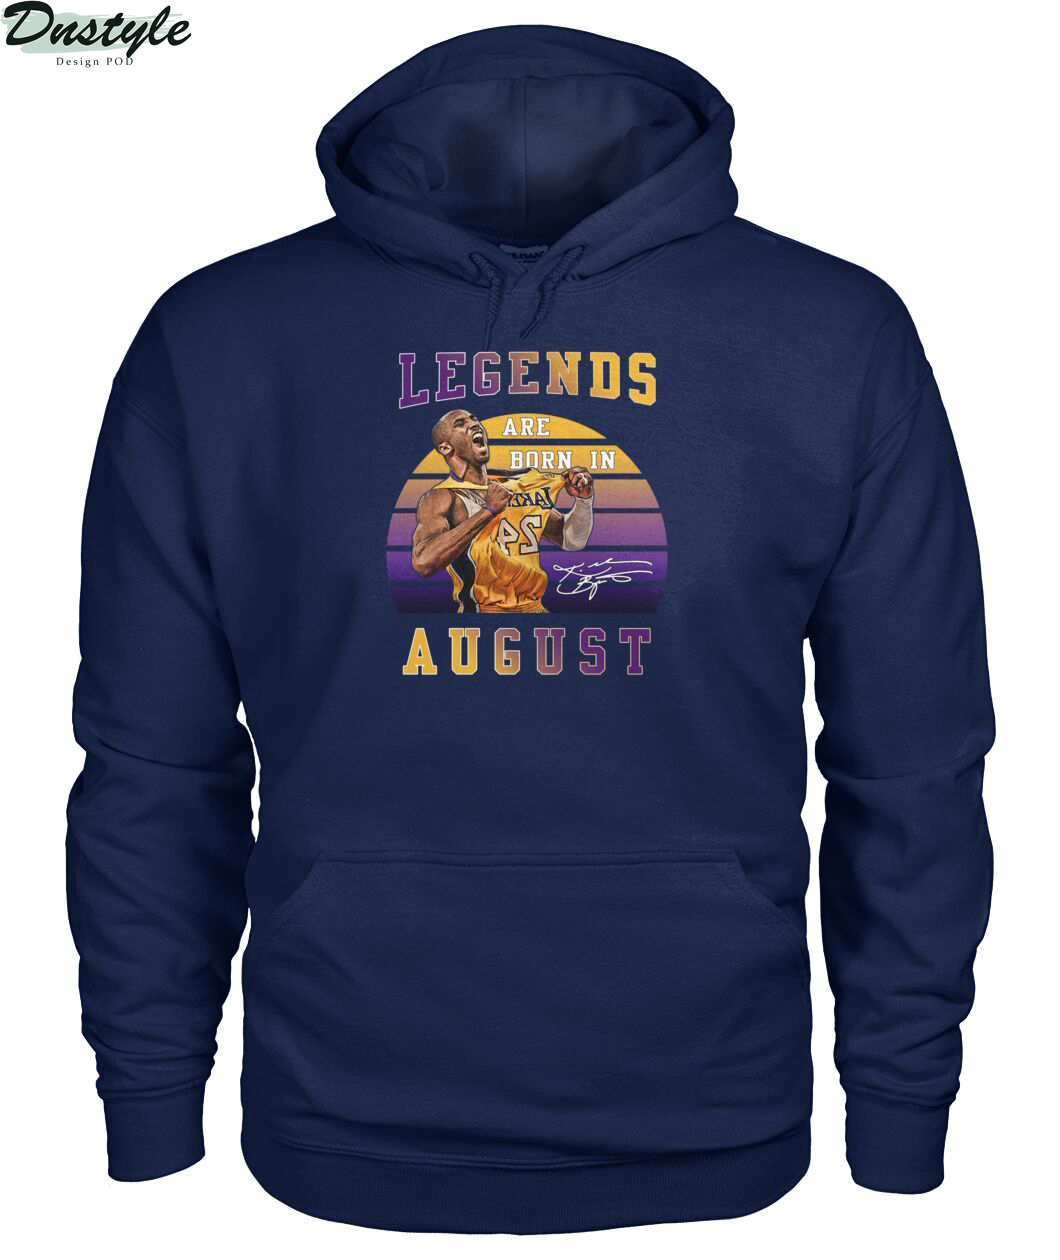 Kobe Bryant signature legends are born in august hoodie